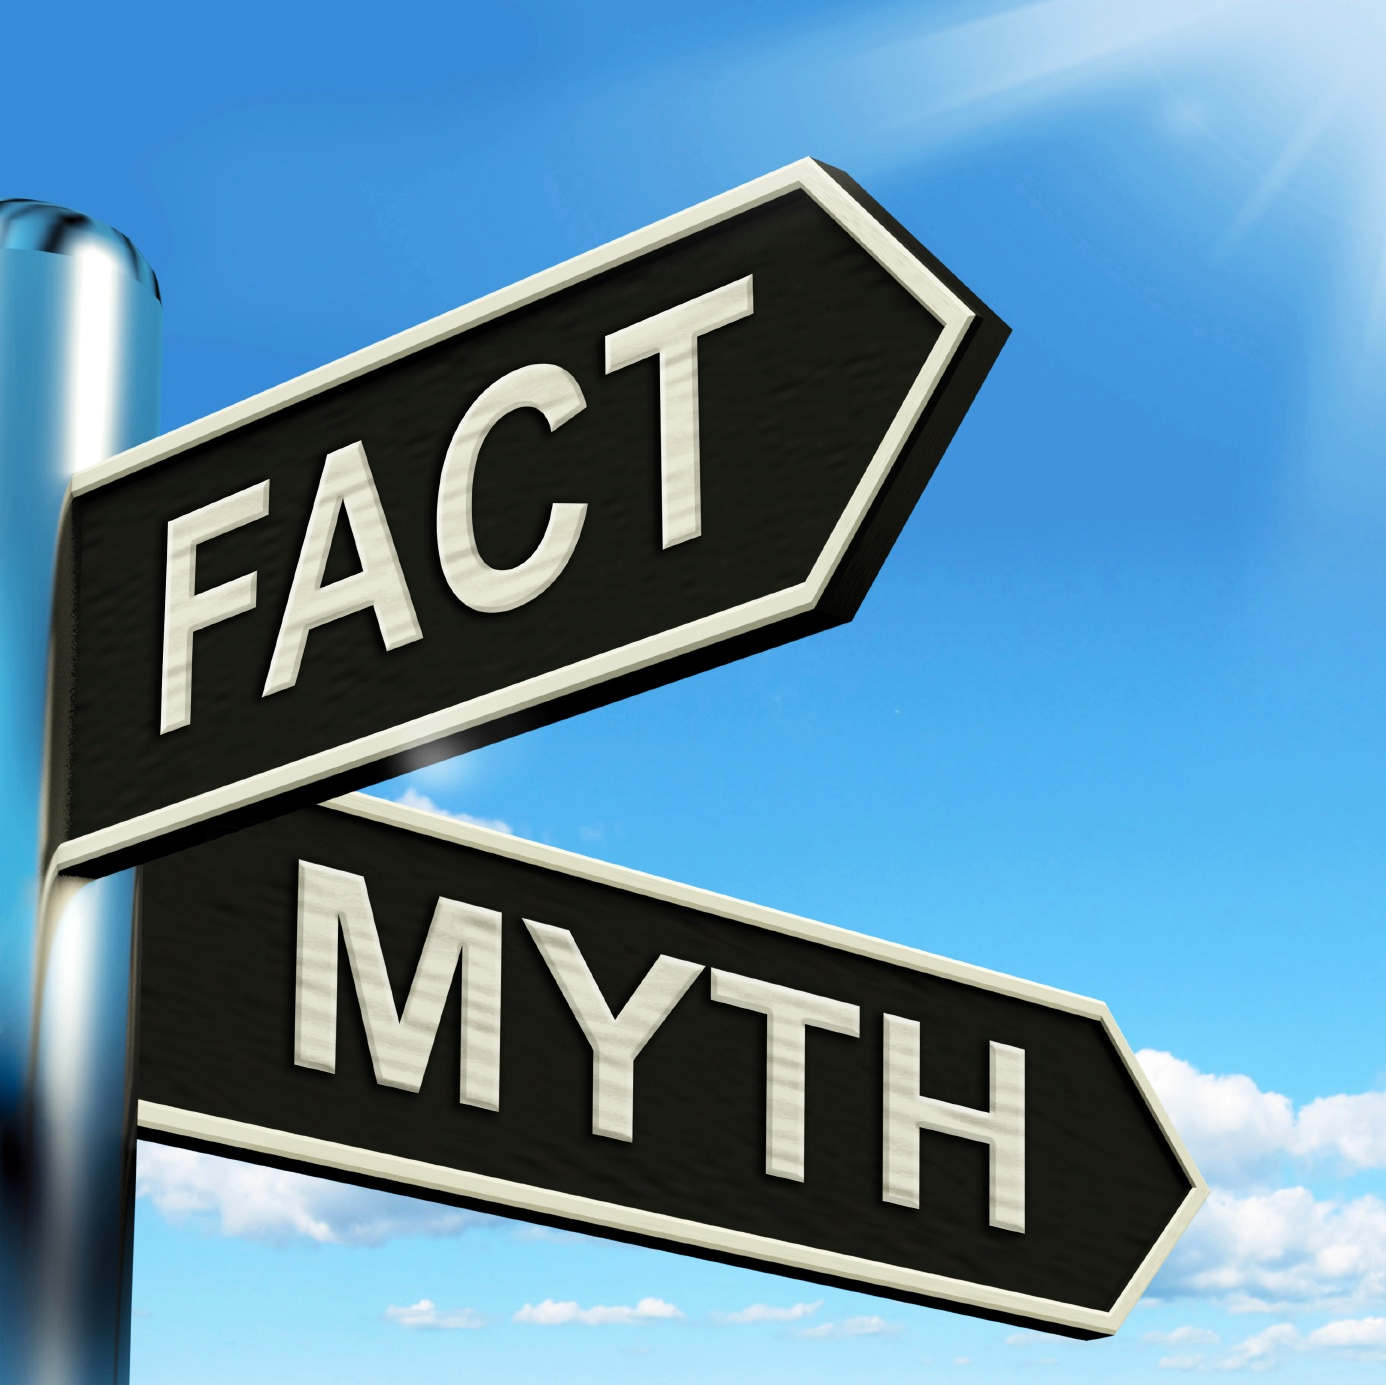 b2b-sales-myths-vs-facts.jpg